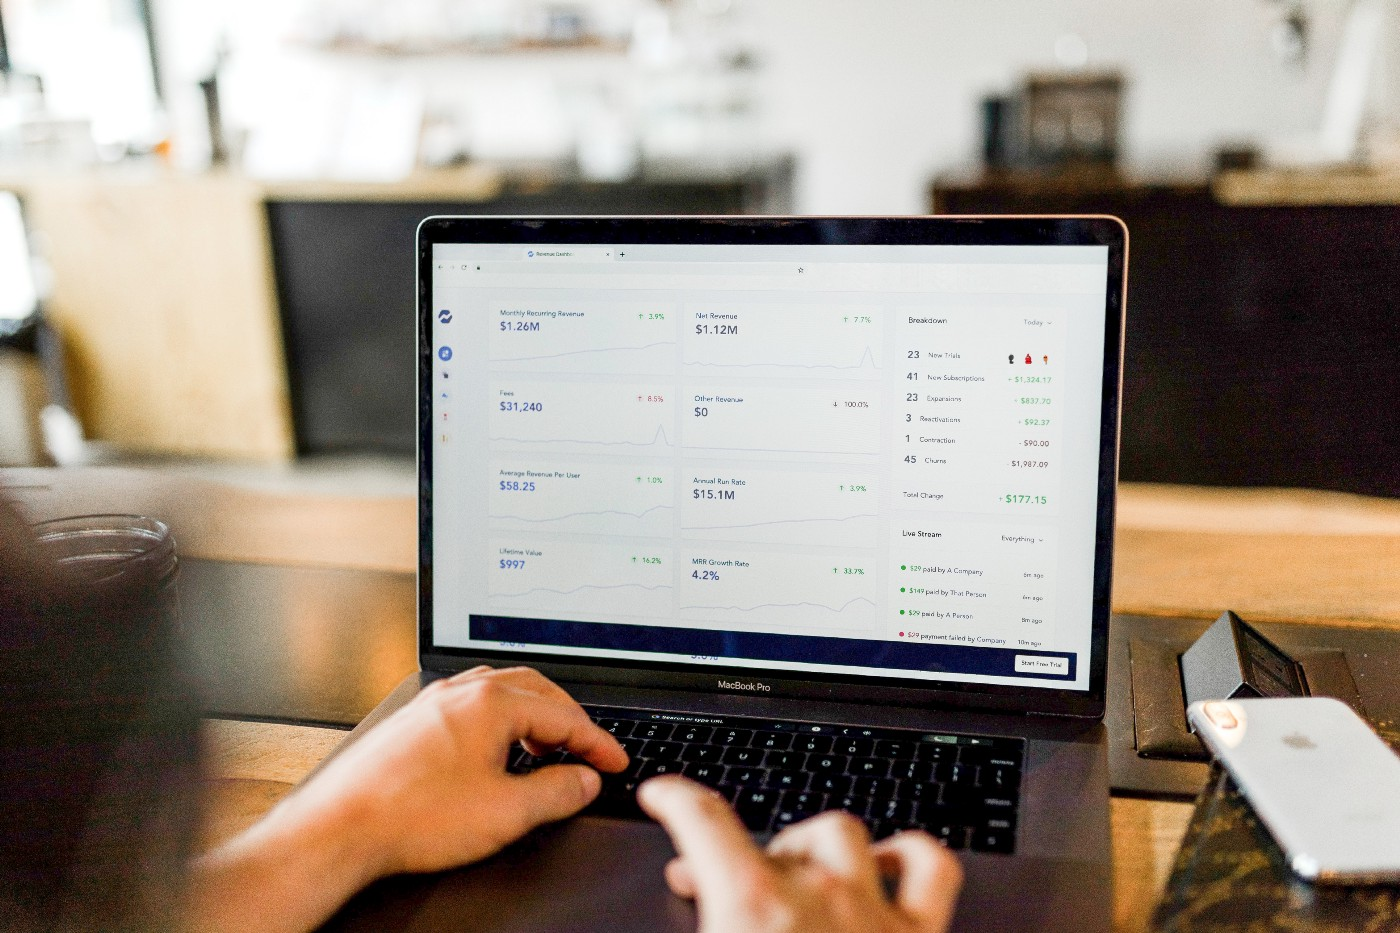 A person reviews their personal finance dashboard on their laptop